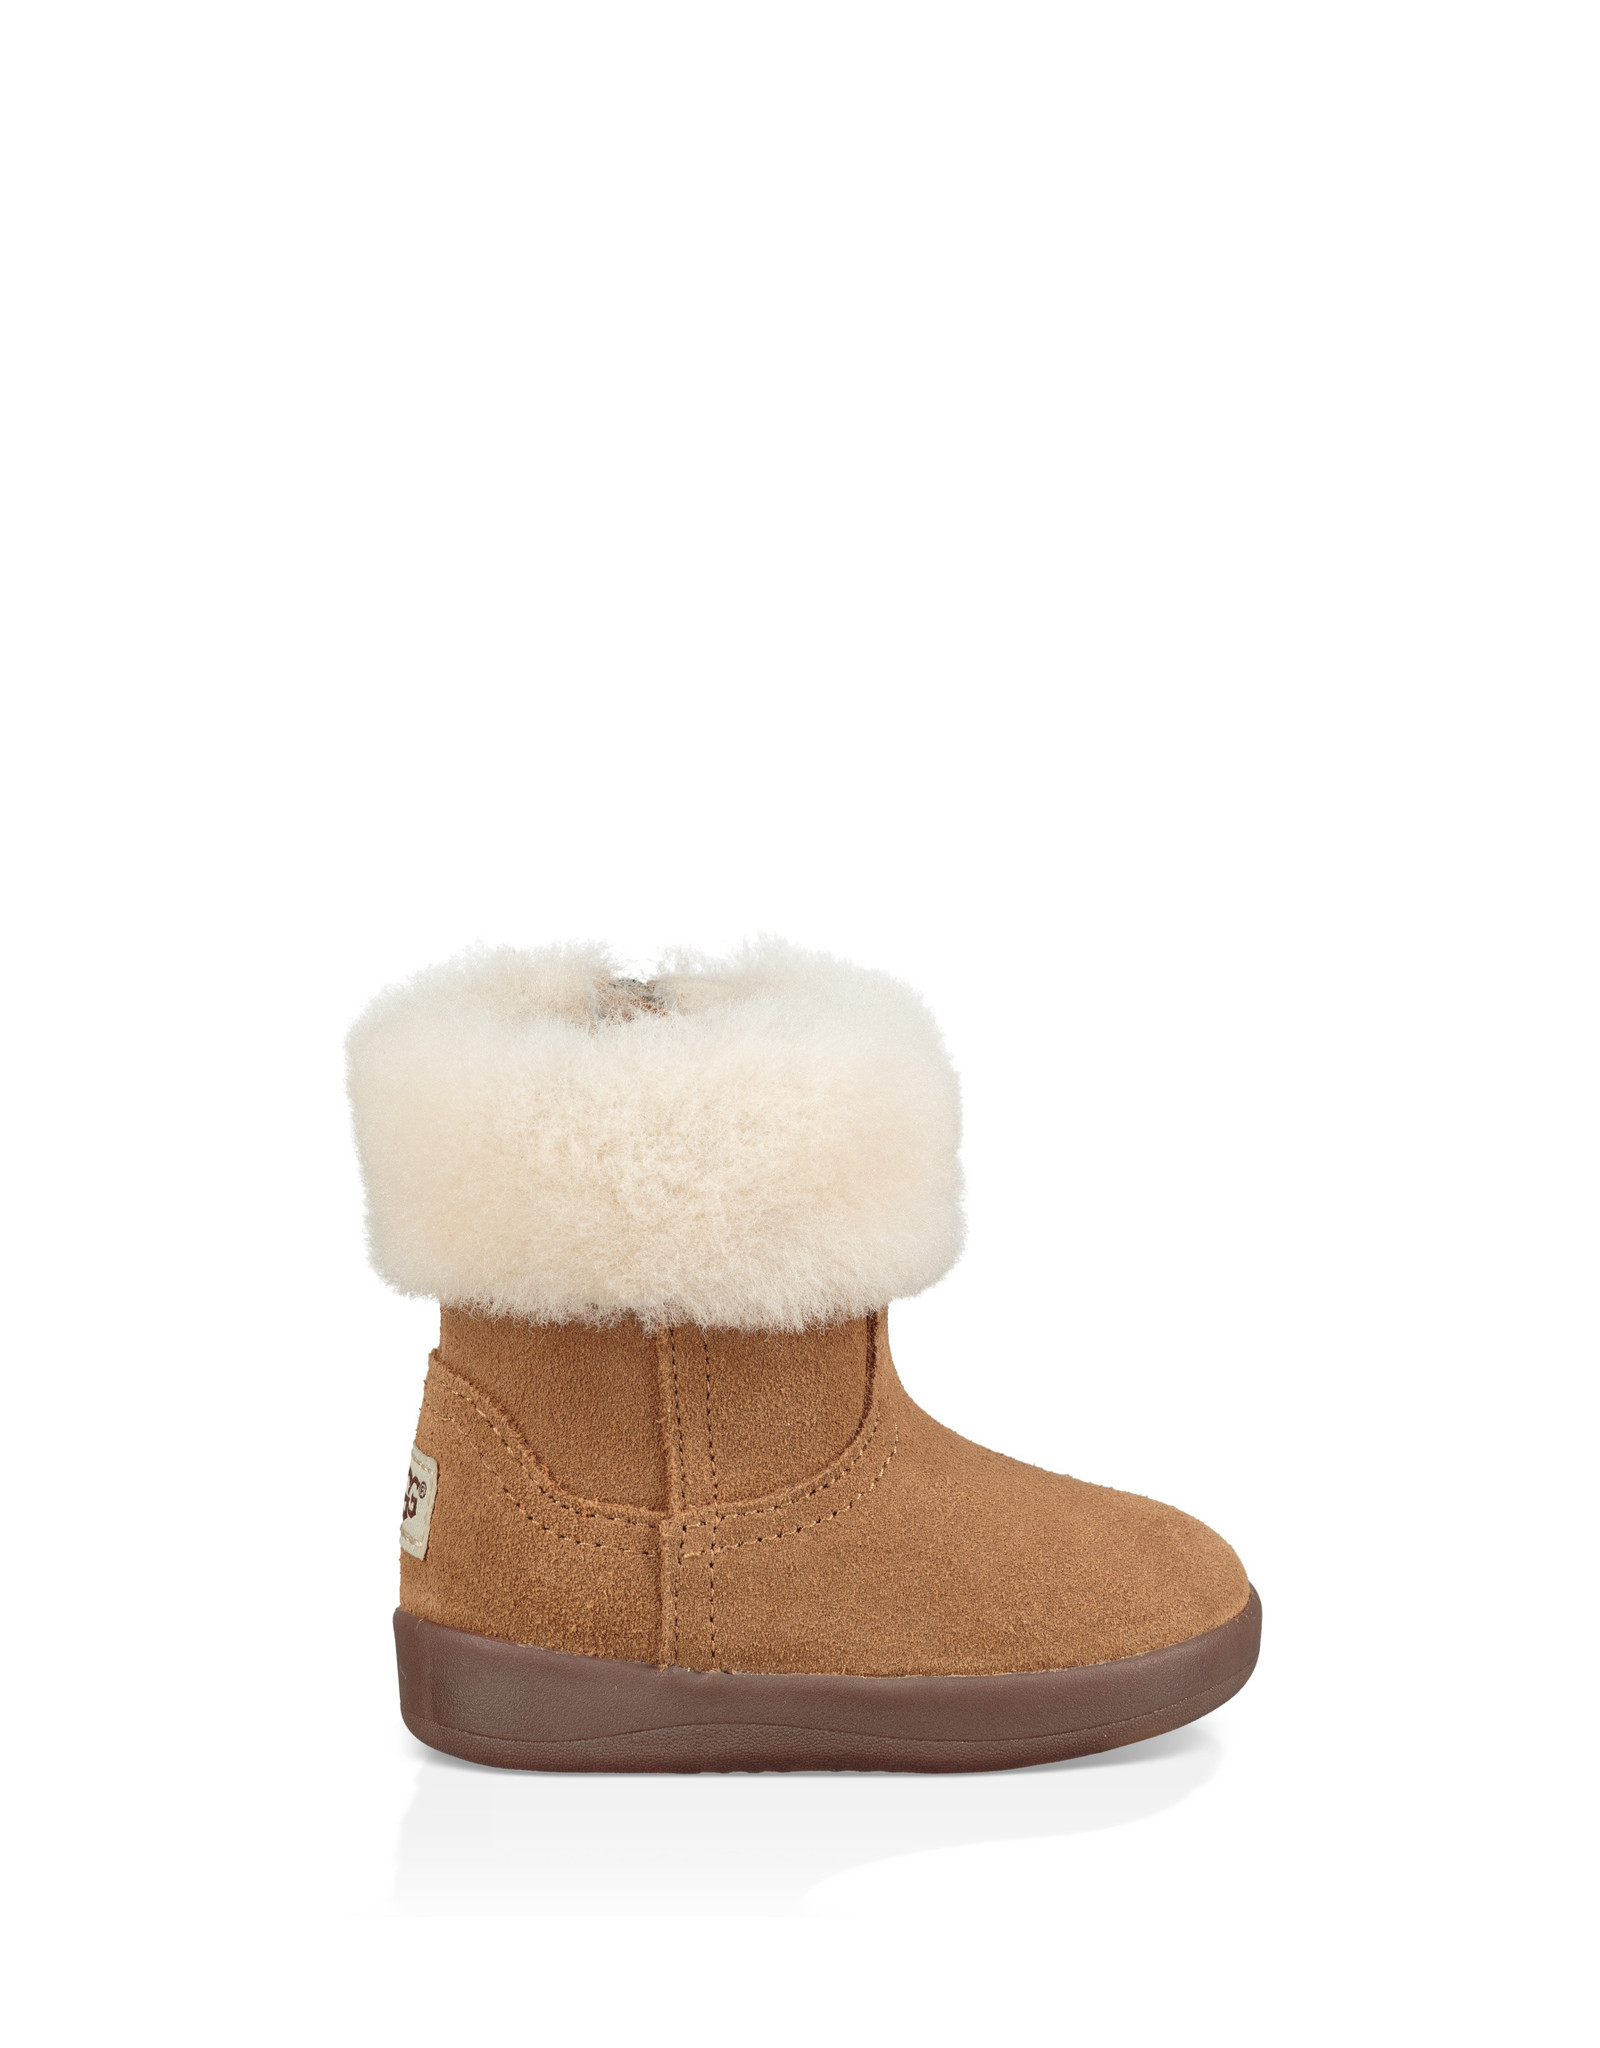 UGG UGG JORIE TODDLER BOOT